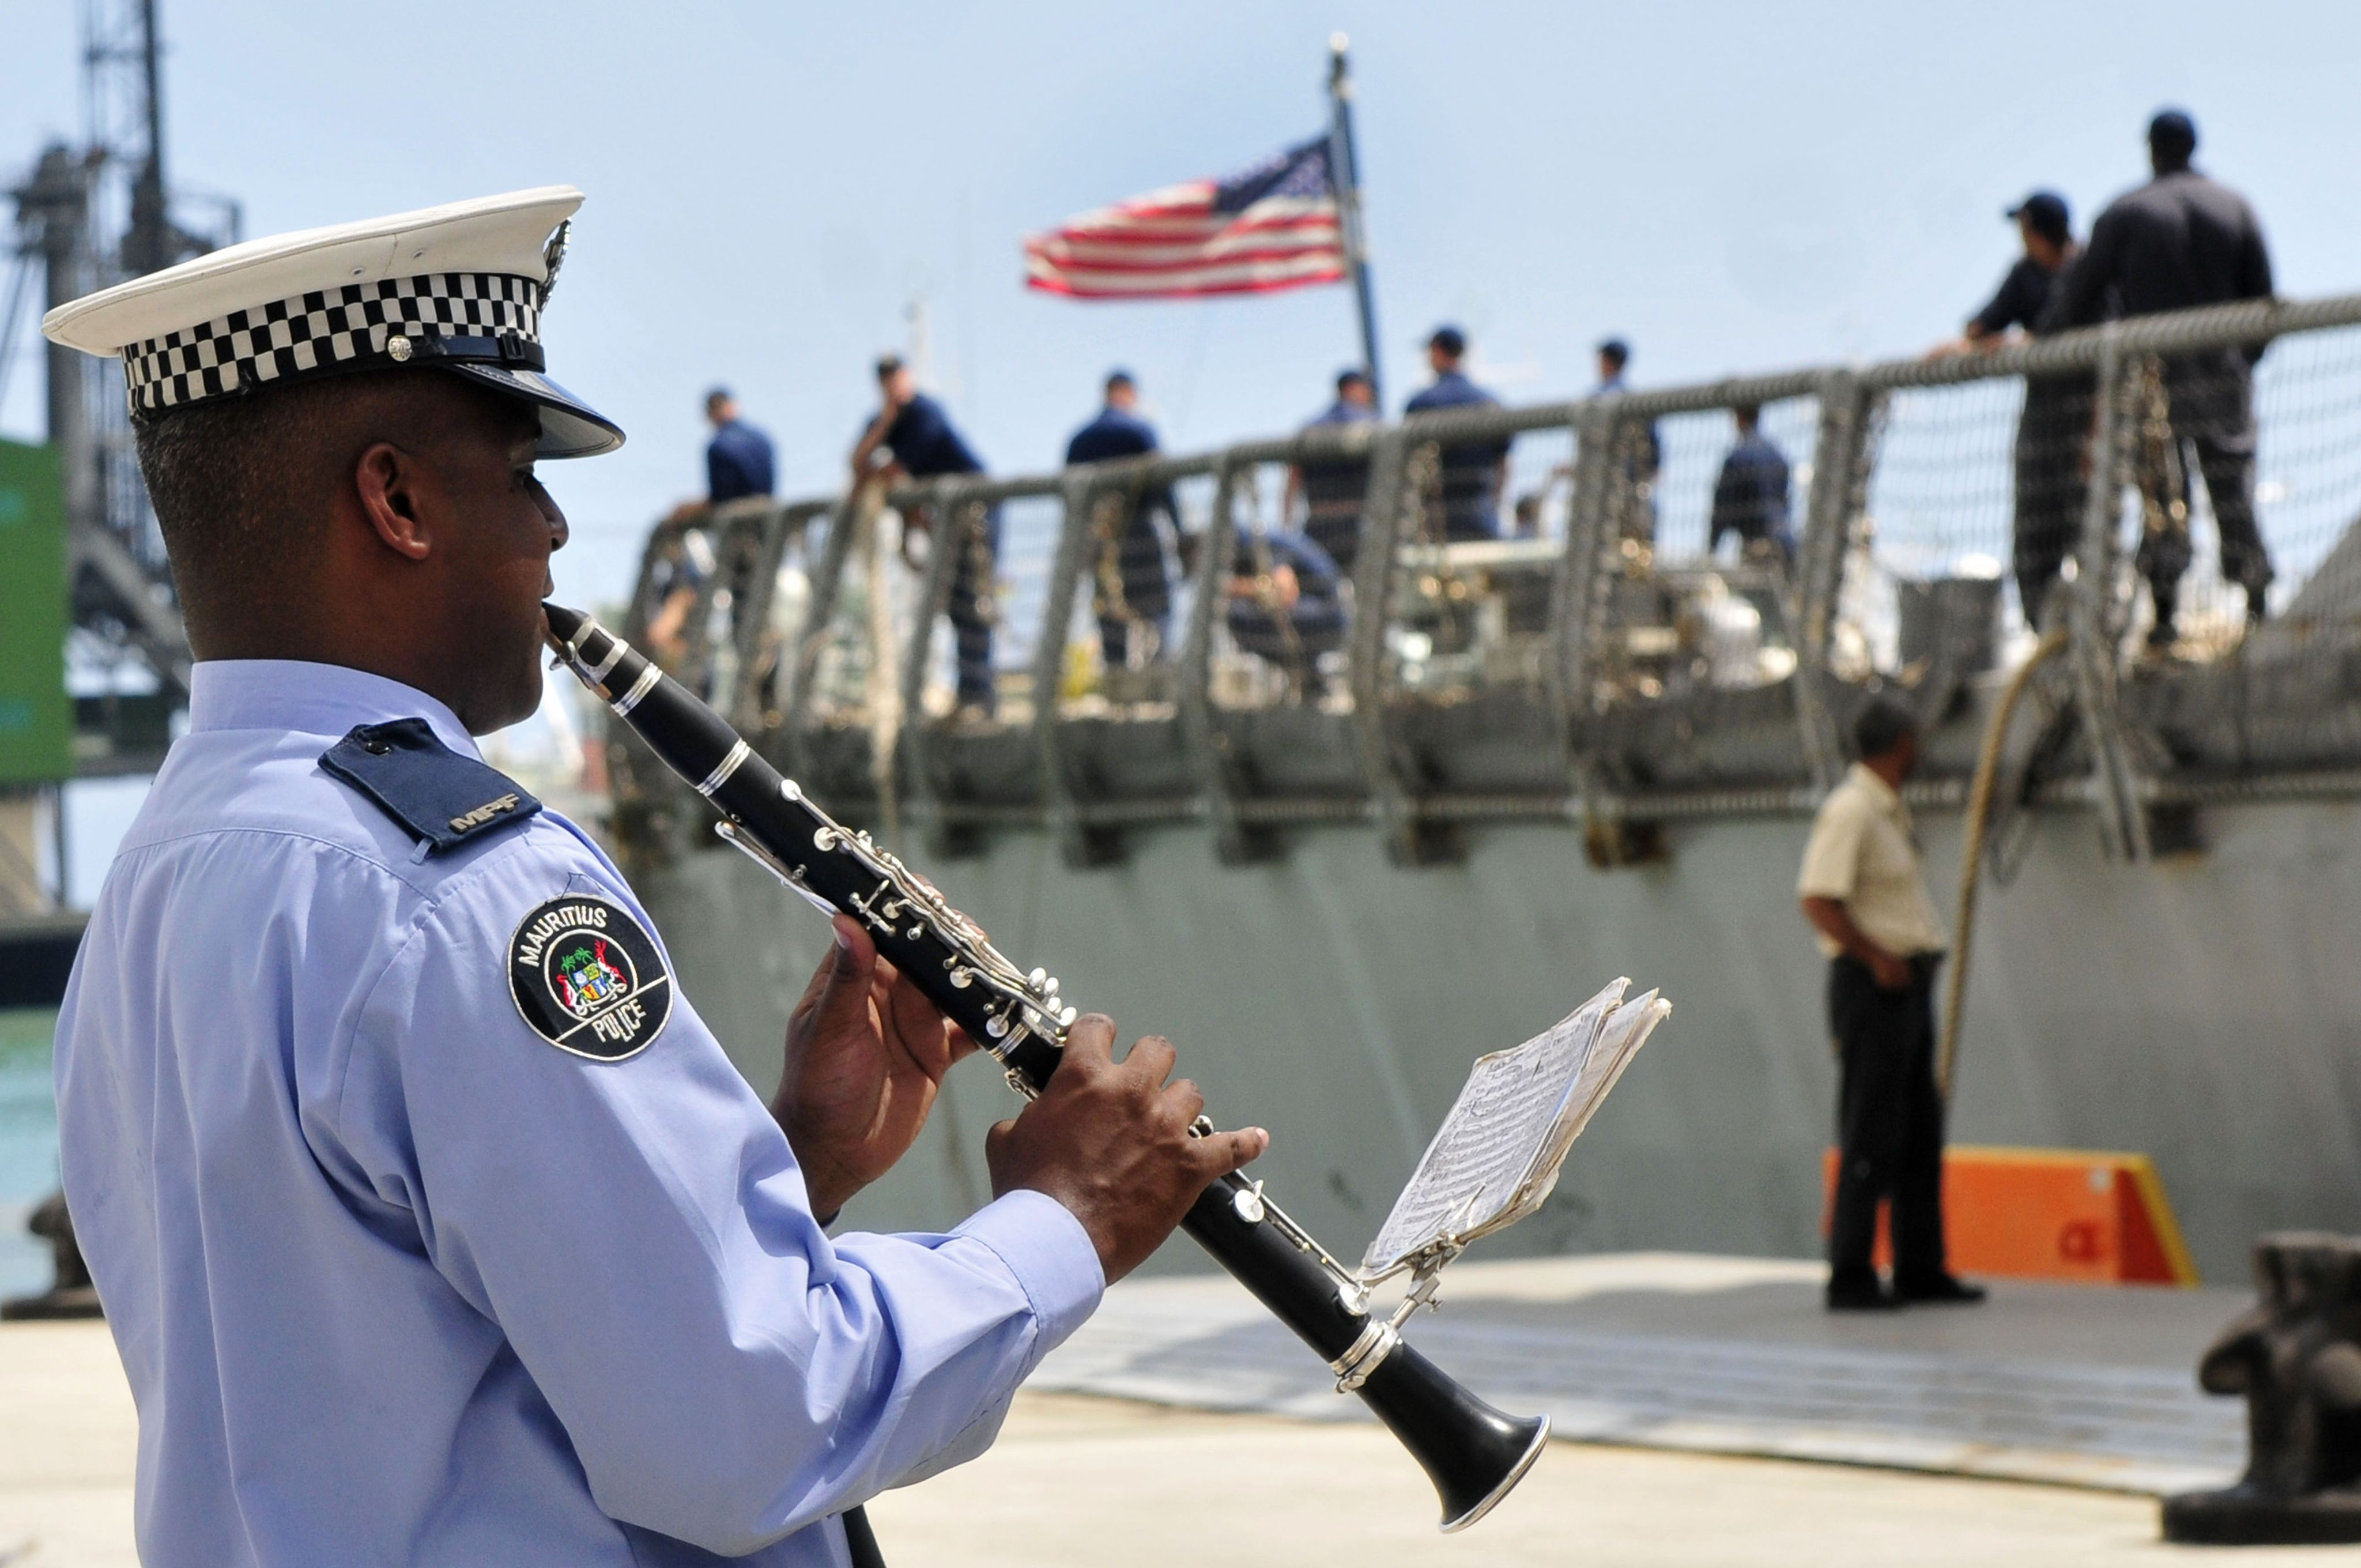 A member of the Mauritian Police Force Band plays the clarinet.